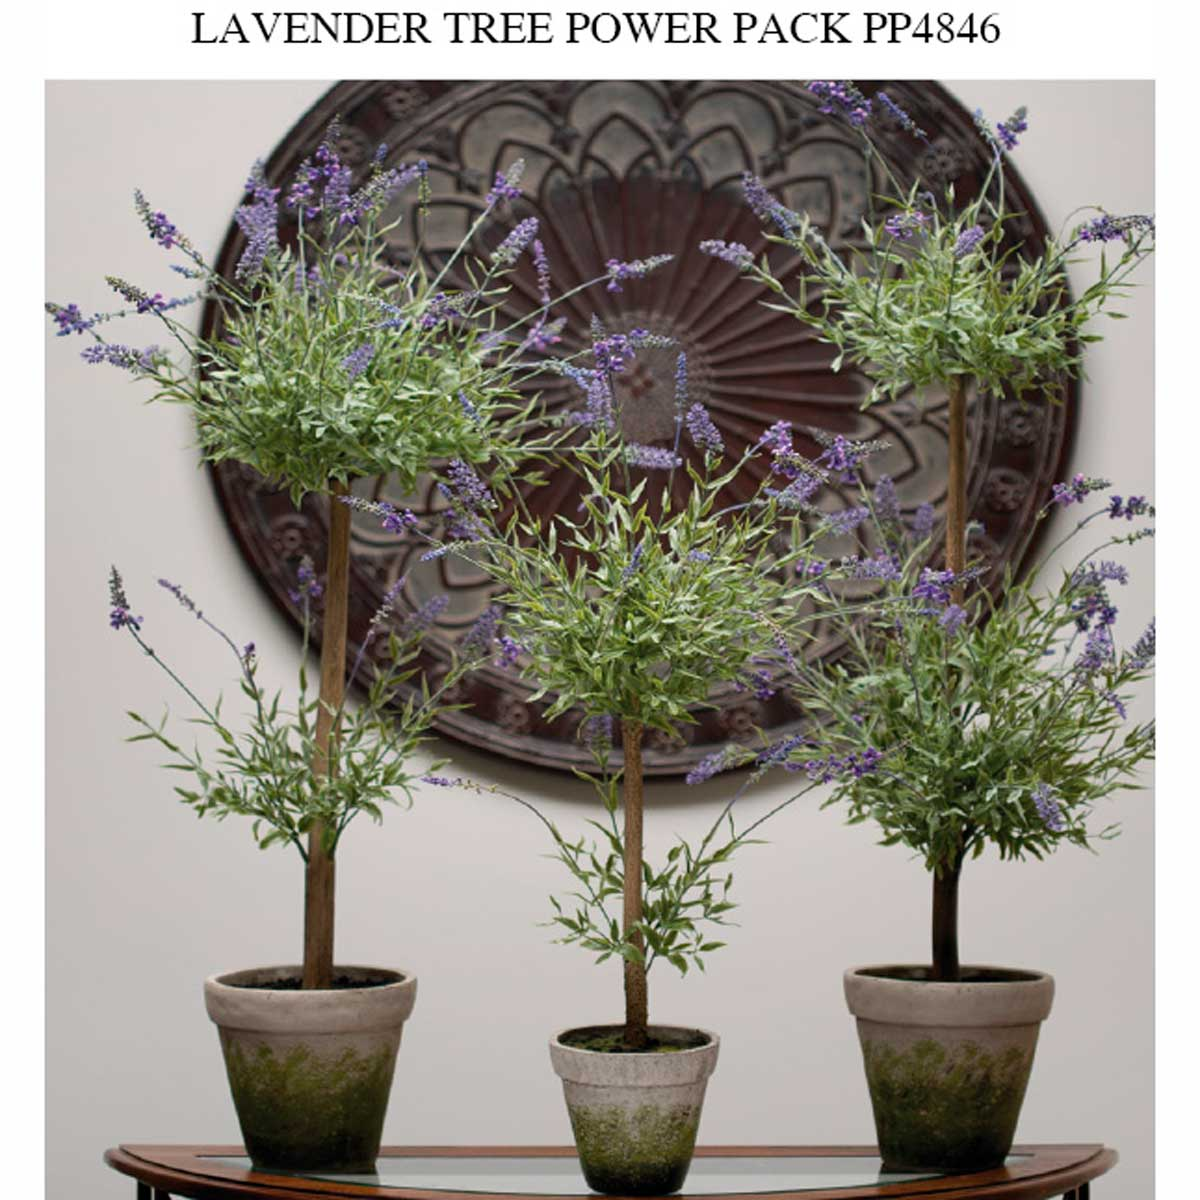 LAVENDER TREE POWER PACK 3 UNITS